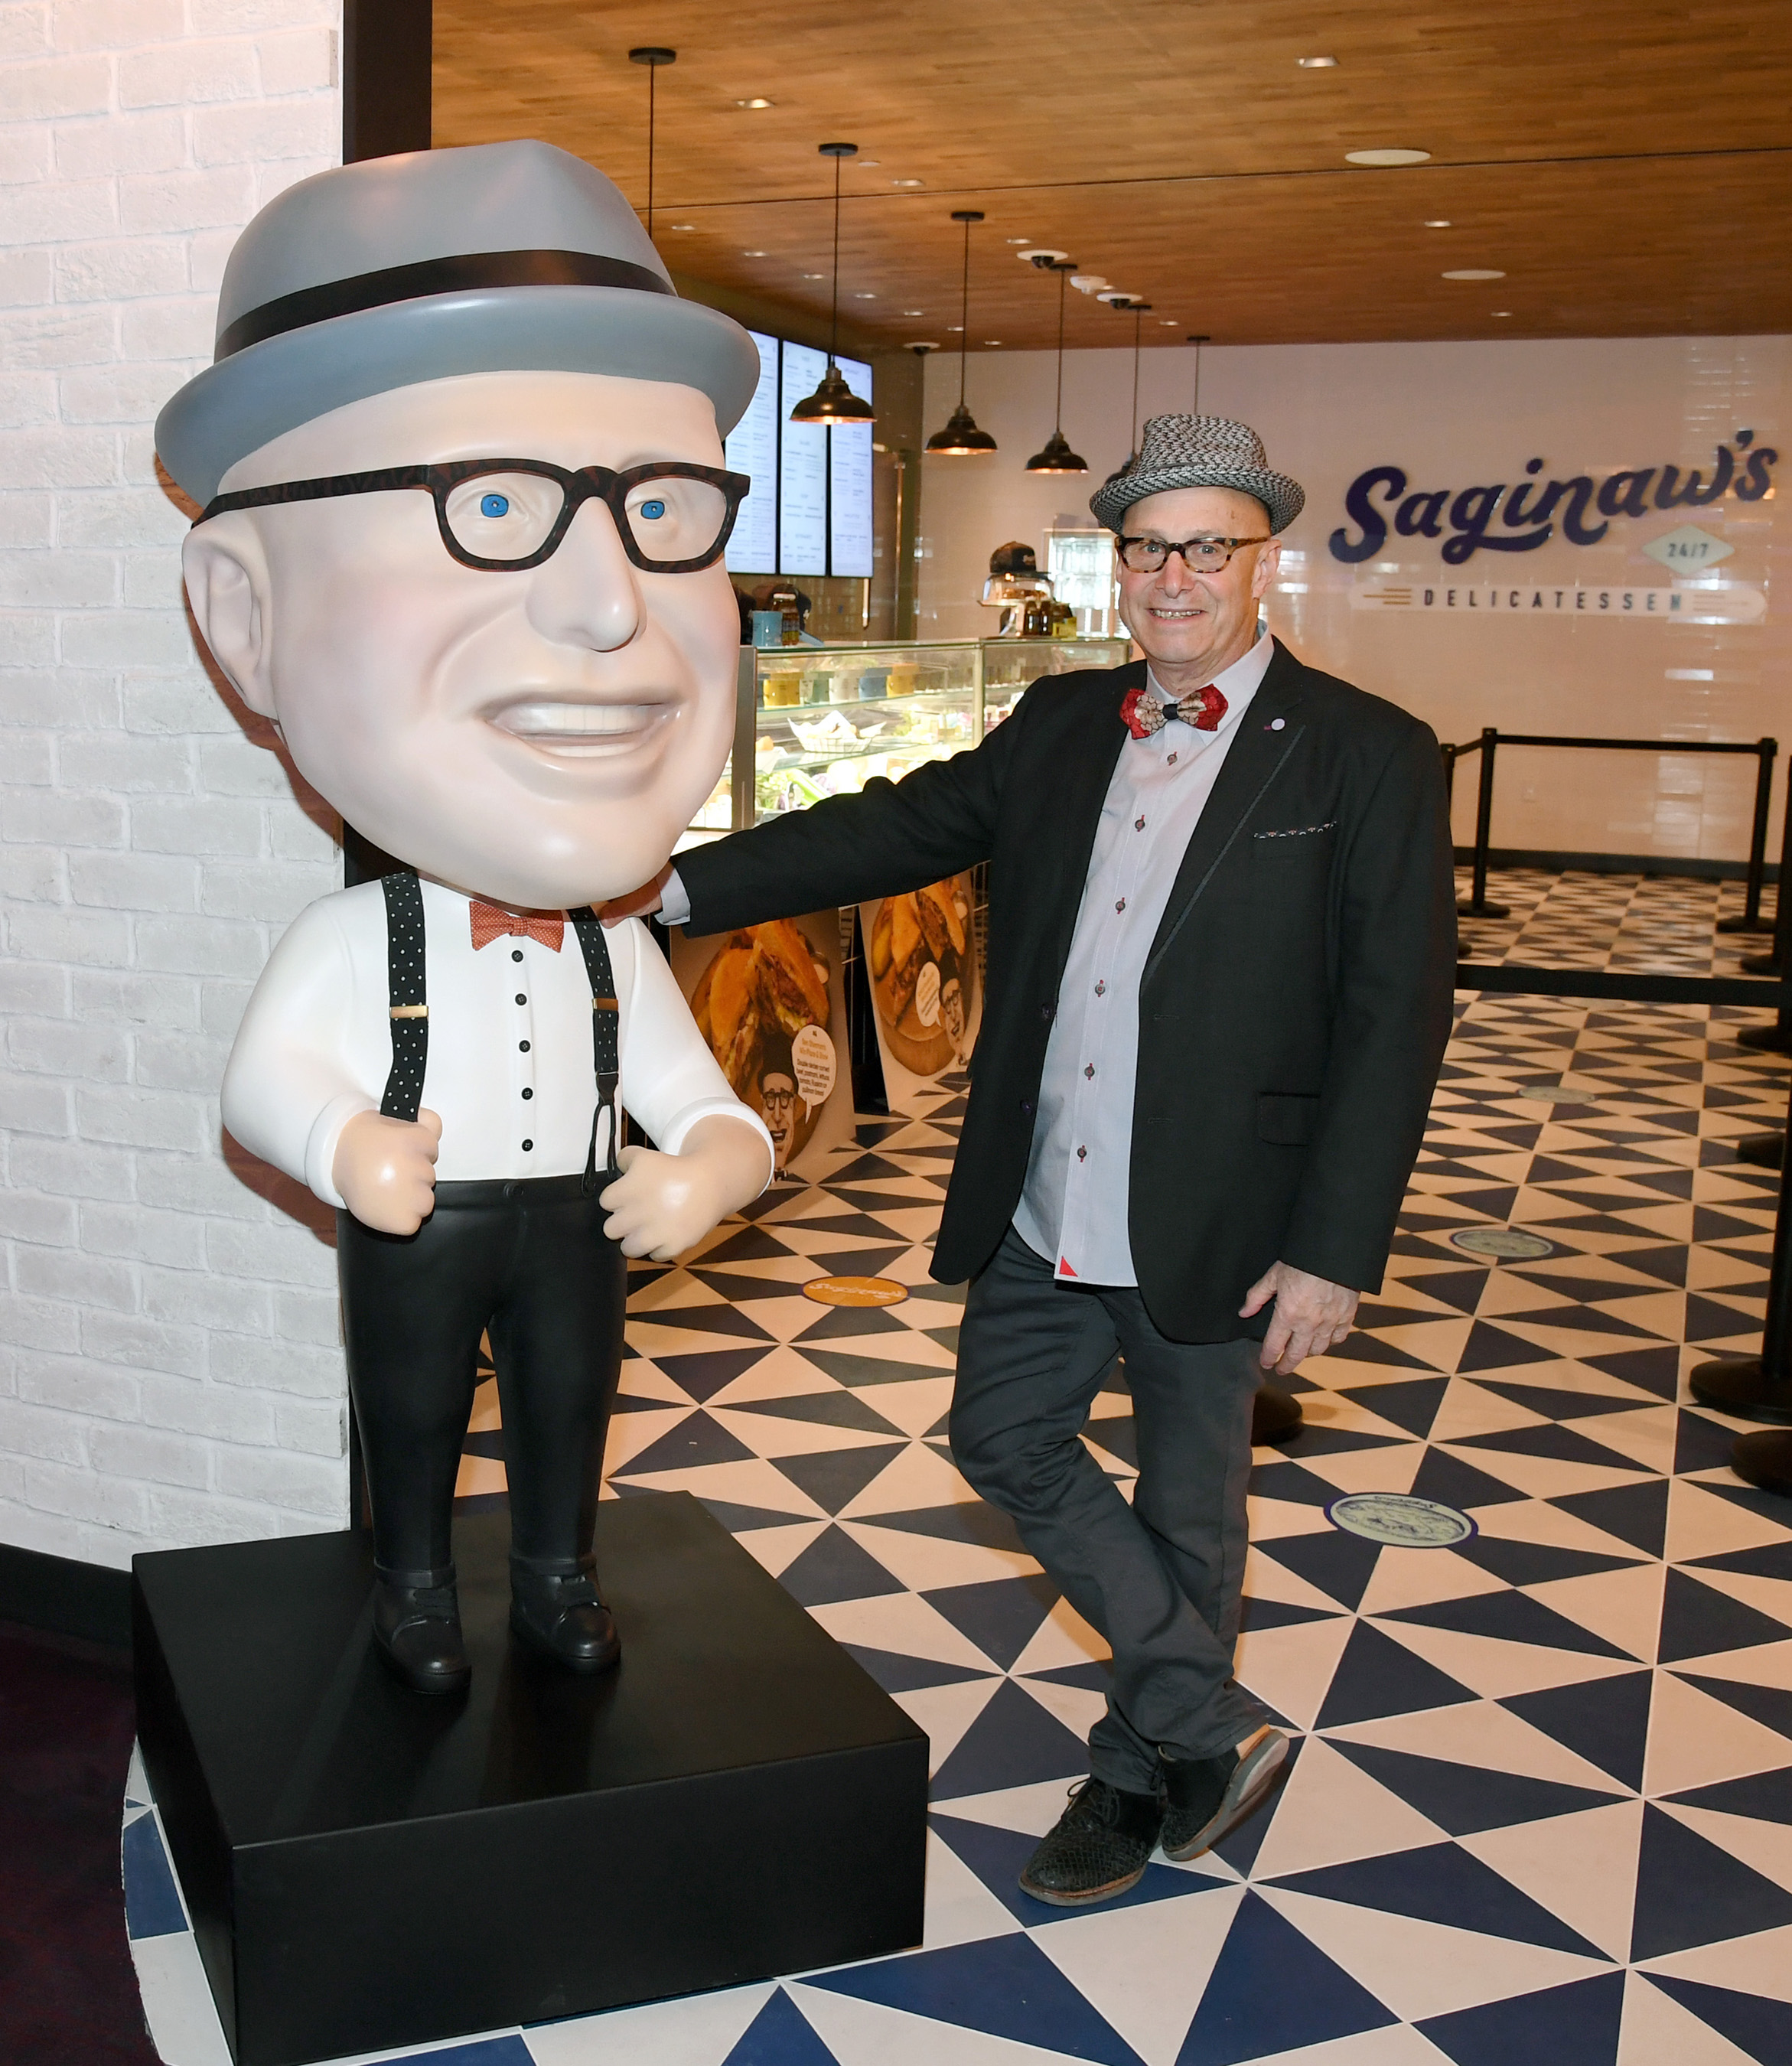 Legendary Michigan restaurateur Paul Saginaw has opened his first concept outside of Detroit with Saginaw's Delicatessen in Circa Resort & Casino.